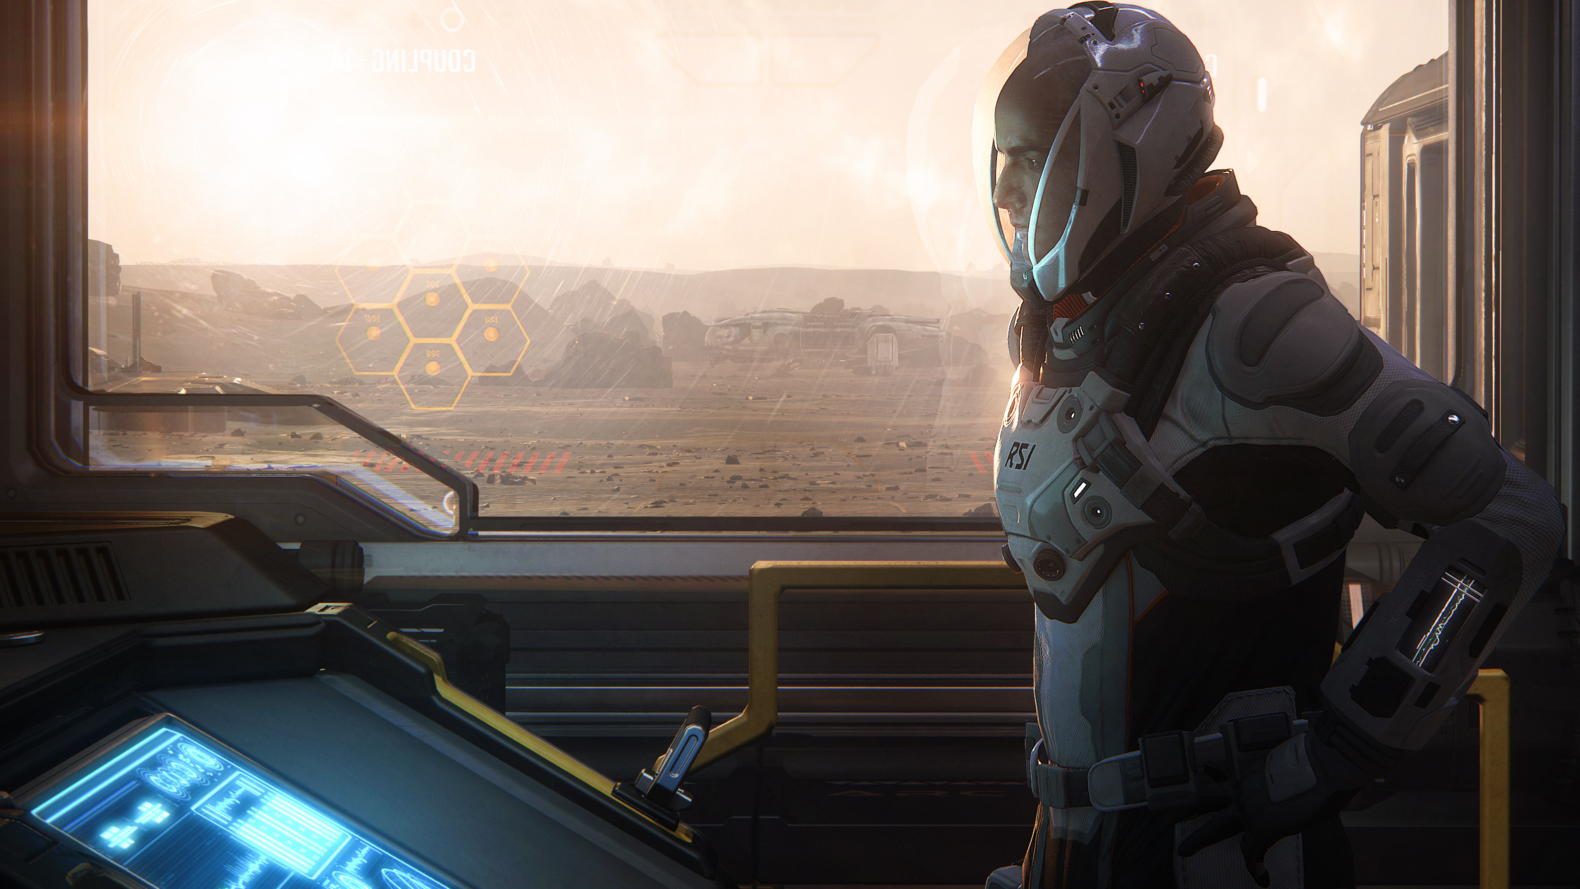 Star Citizen management criticized by employees for poor handling of Texas winter storm